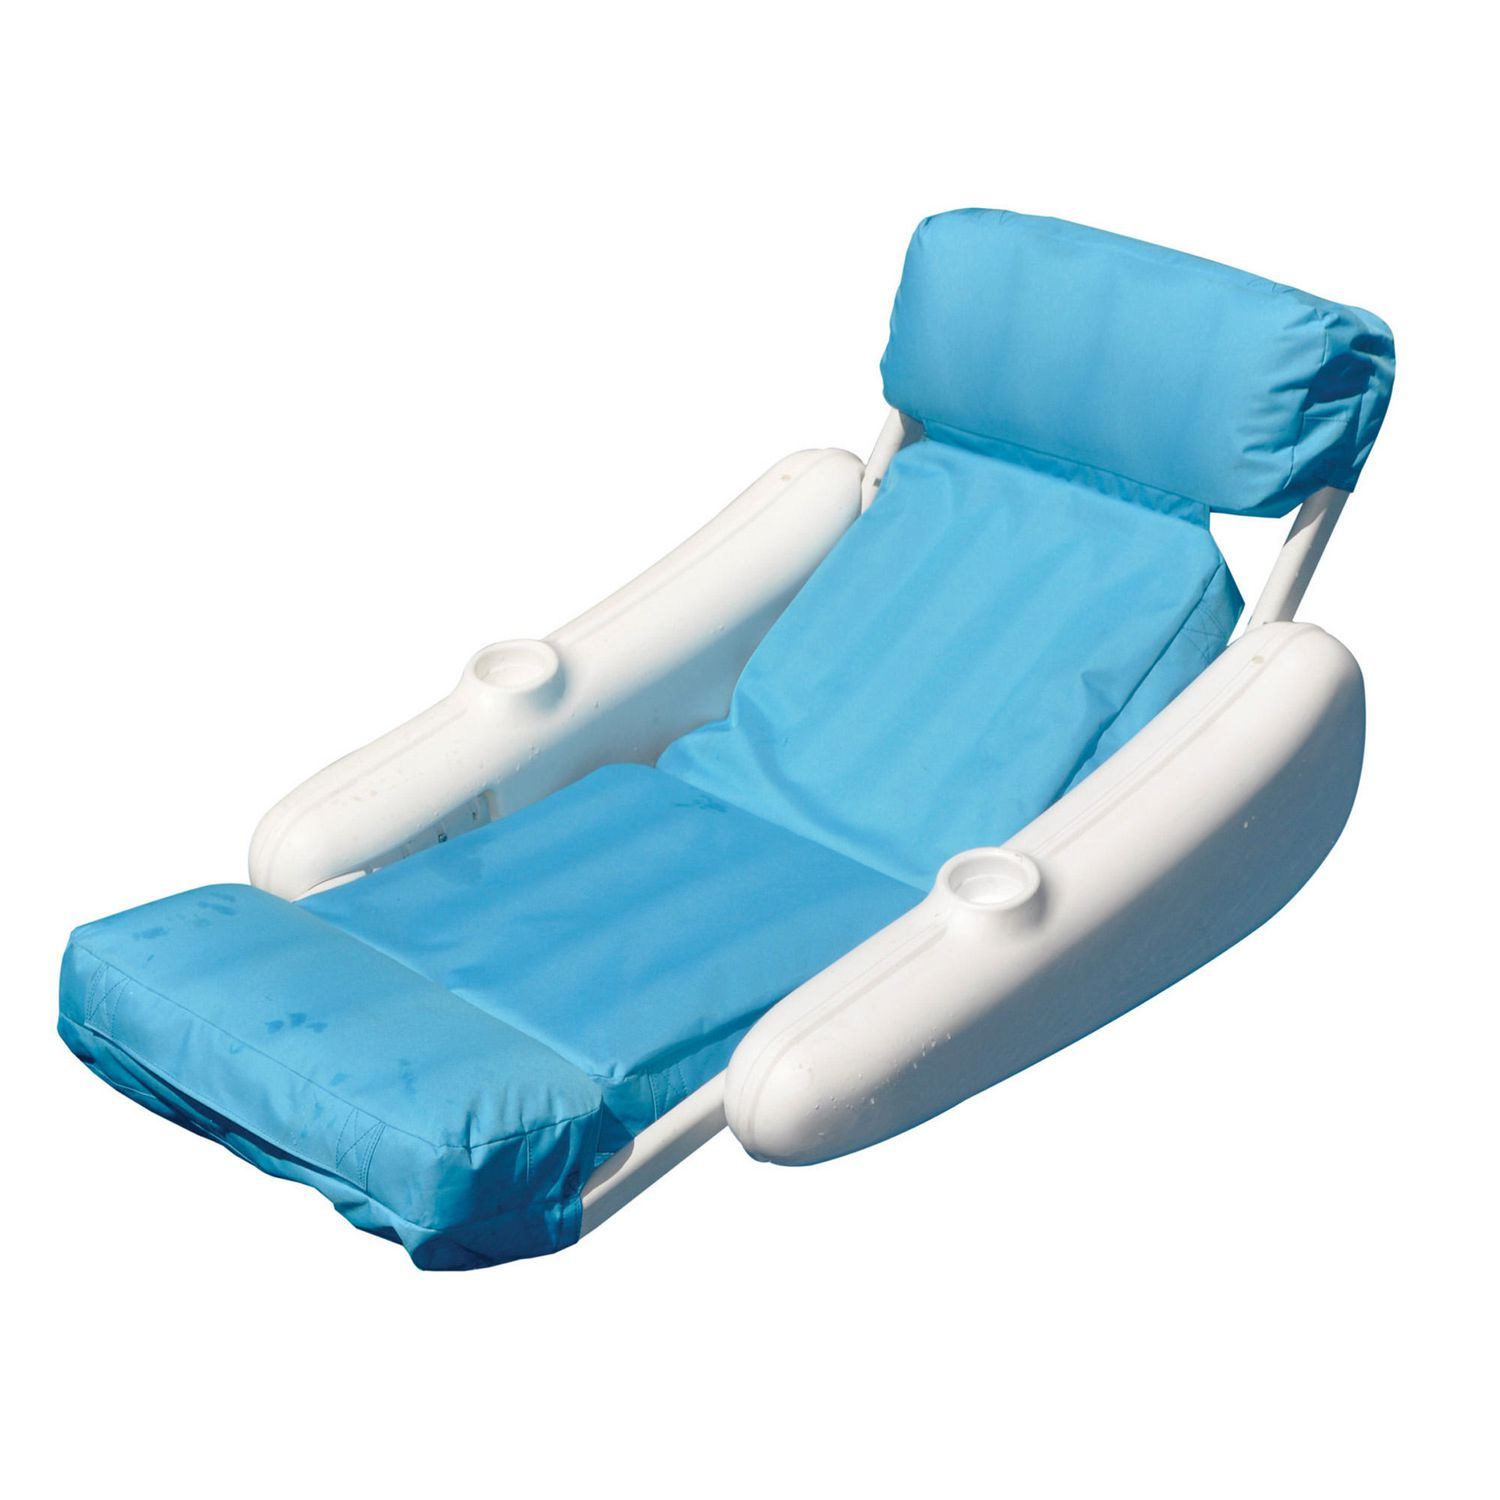 swimline sunchaser luxury floating pool lounger walmart canada